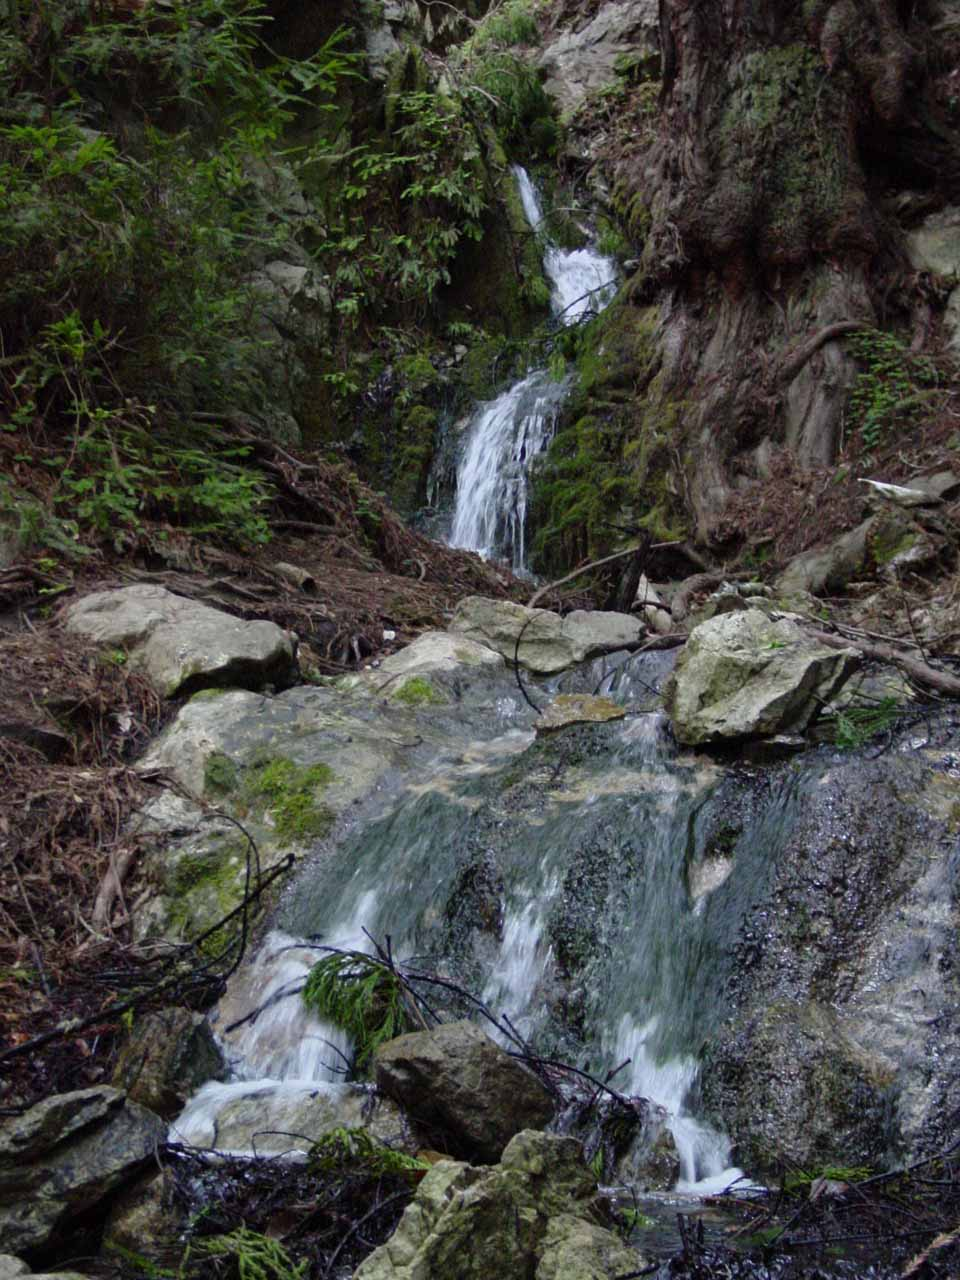 Another look at Canyon Falls in 2003